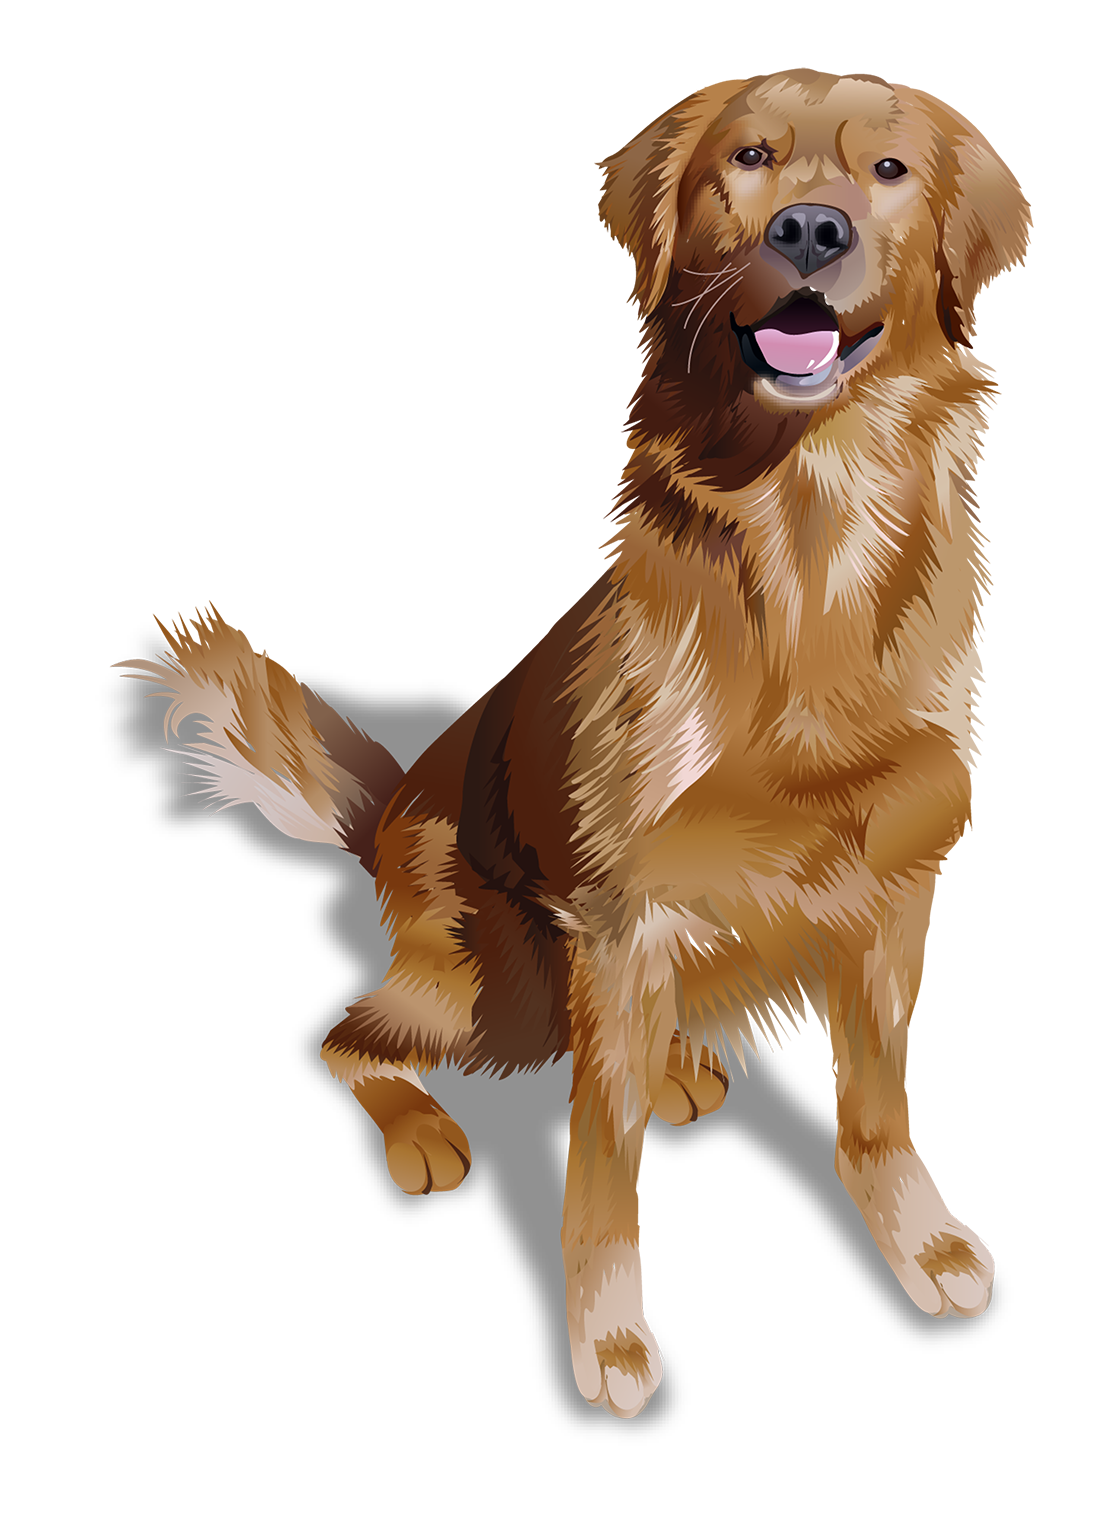 Golden Retriever T-Shirt - Vibrant Vector